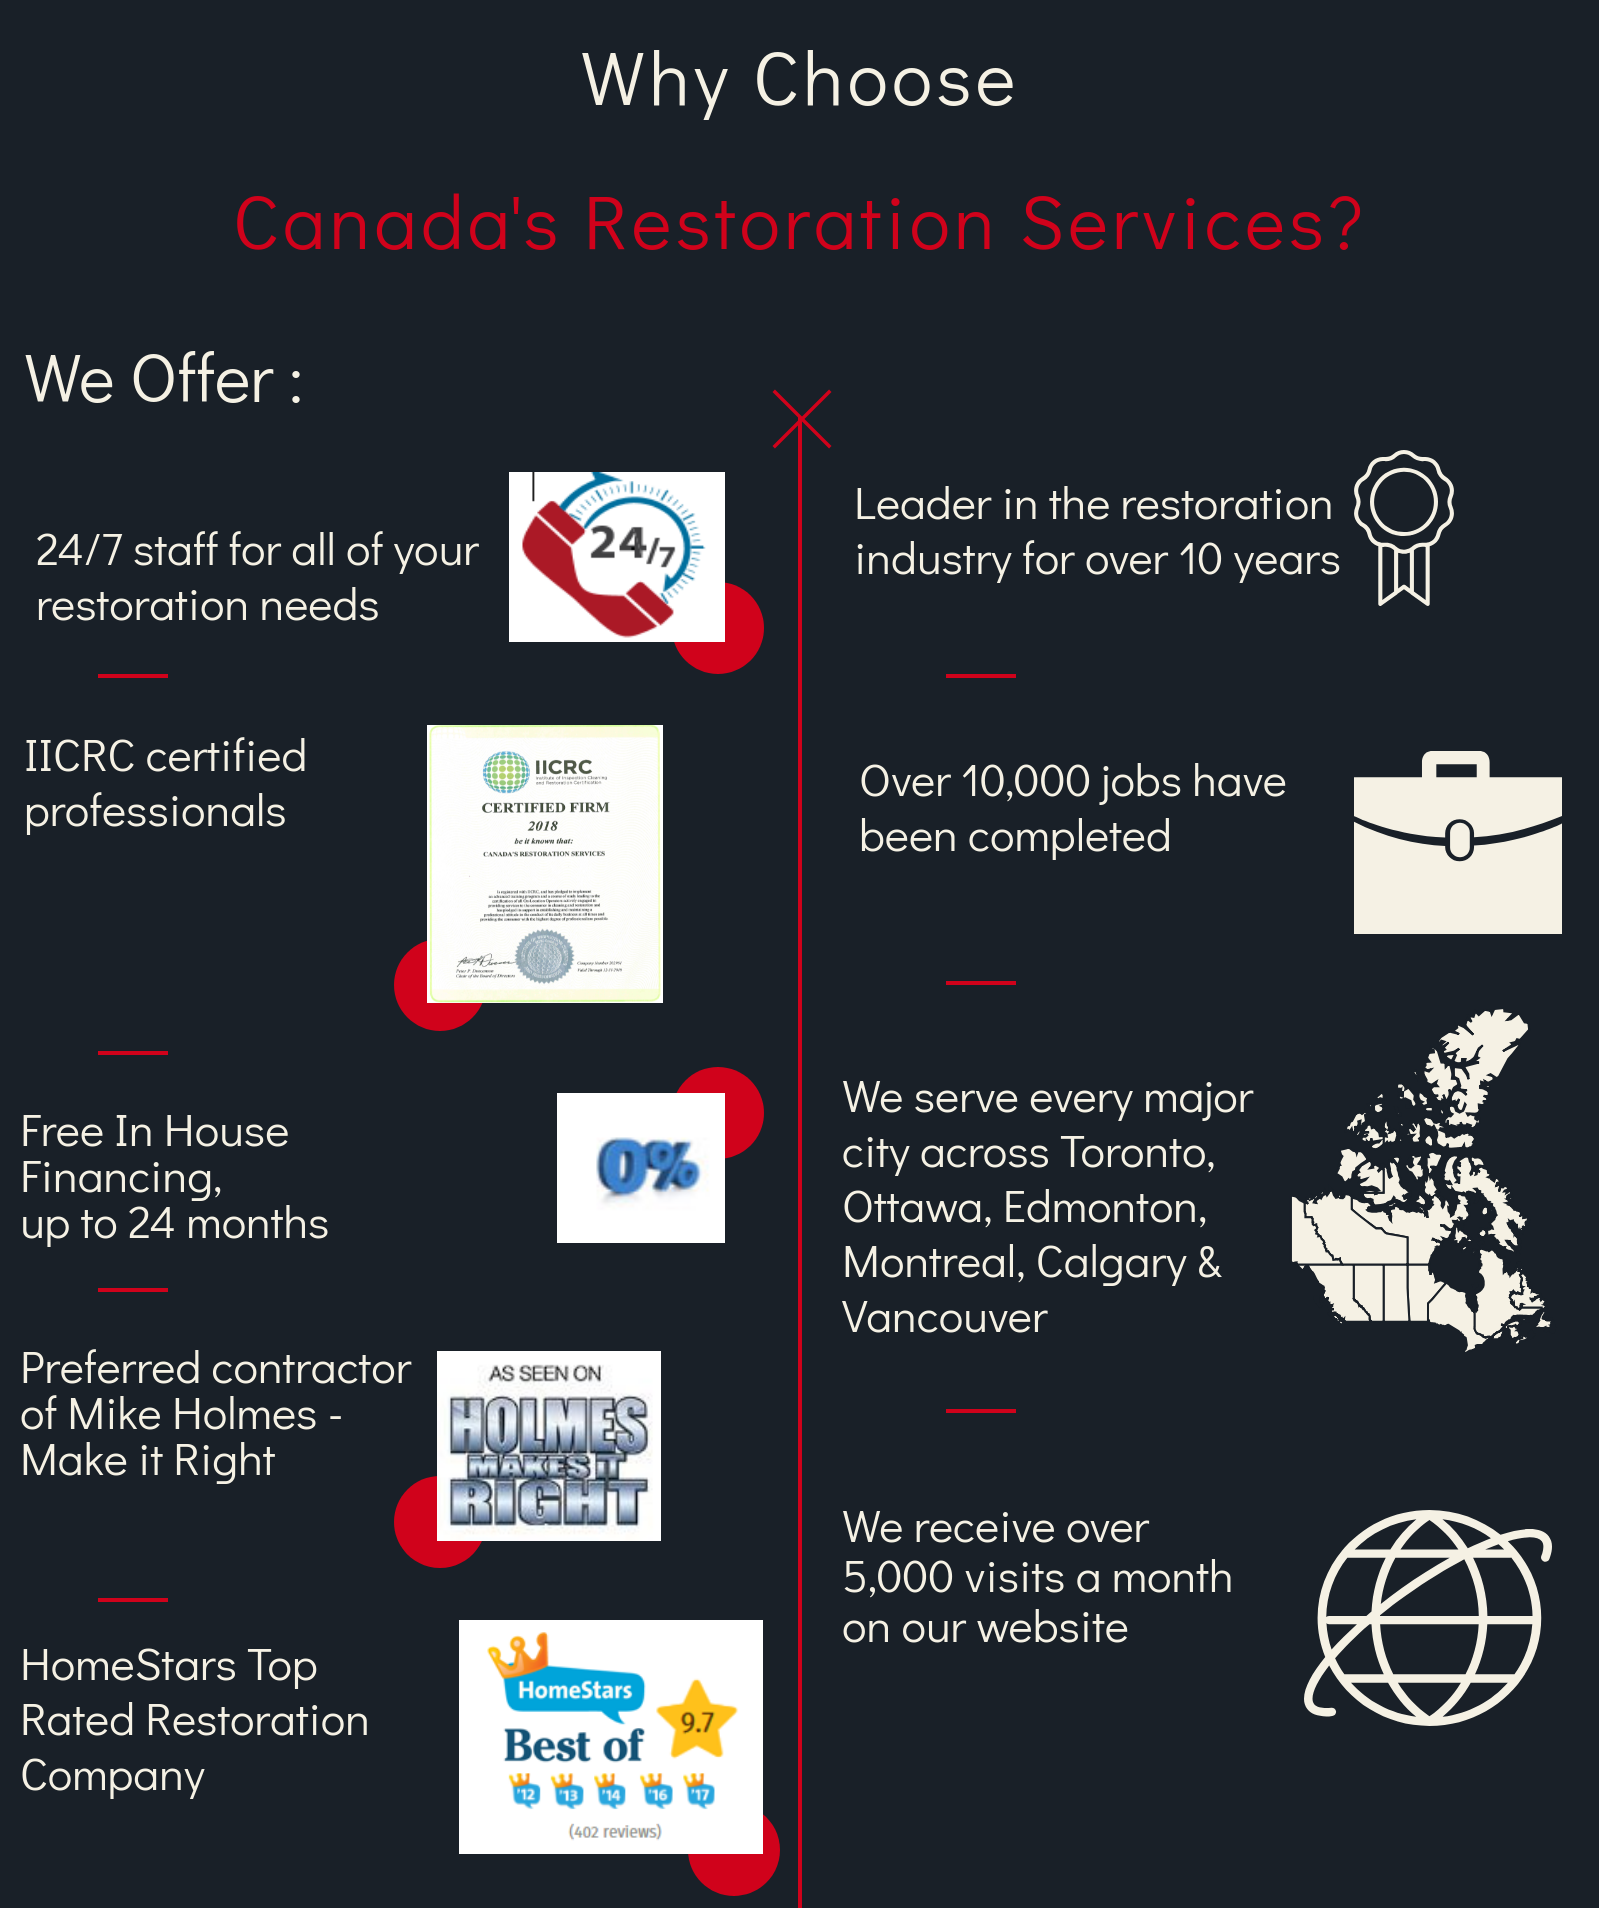 canada restoration services, mold removal, mold, asbestos, asbestos removal, water damage, water repair, construction, construction services, asbestos abatement, mold